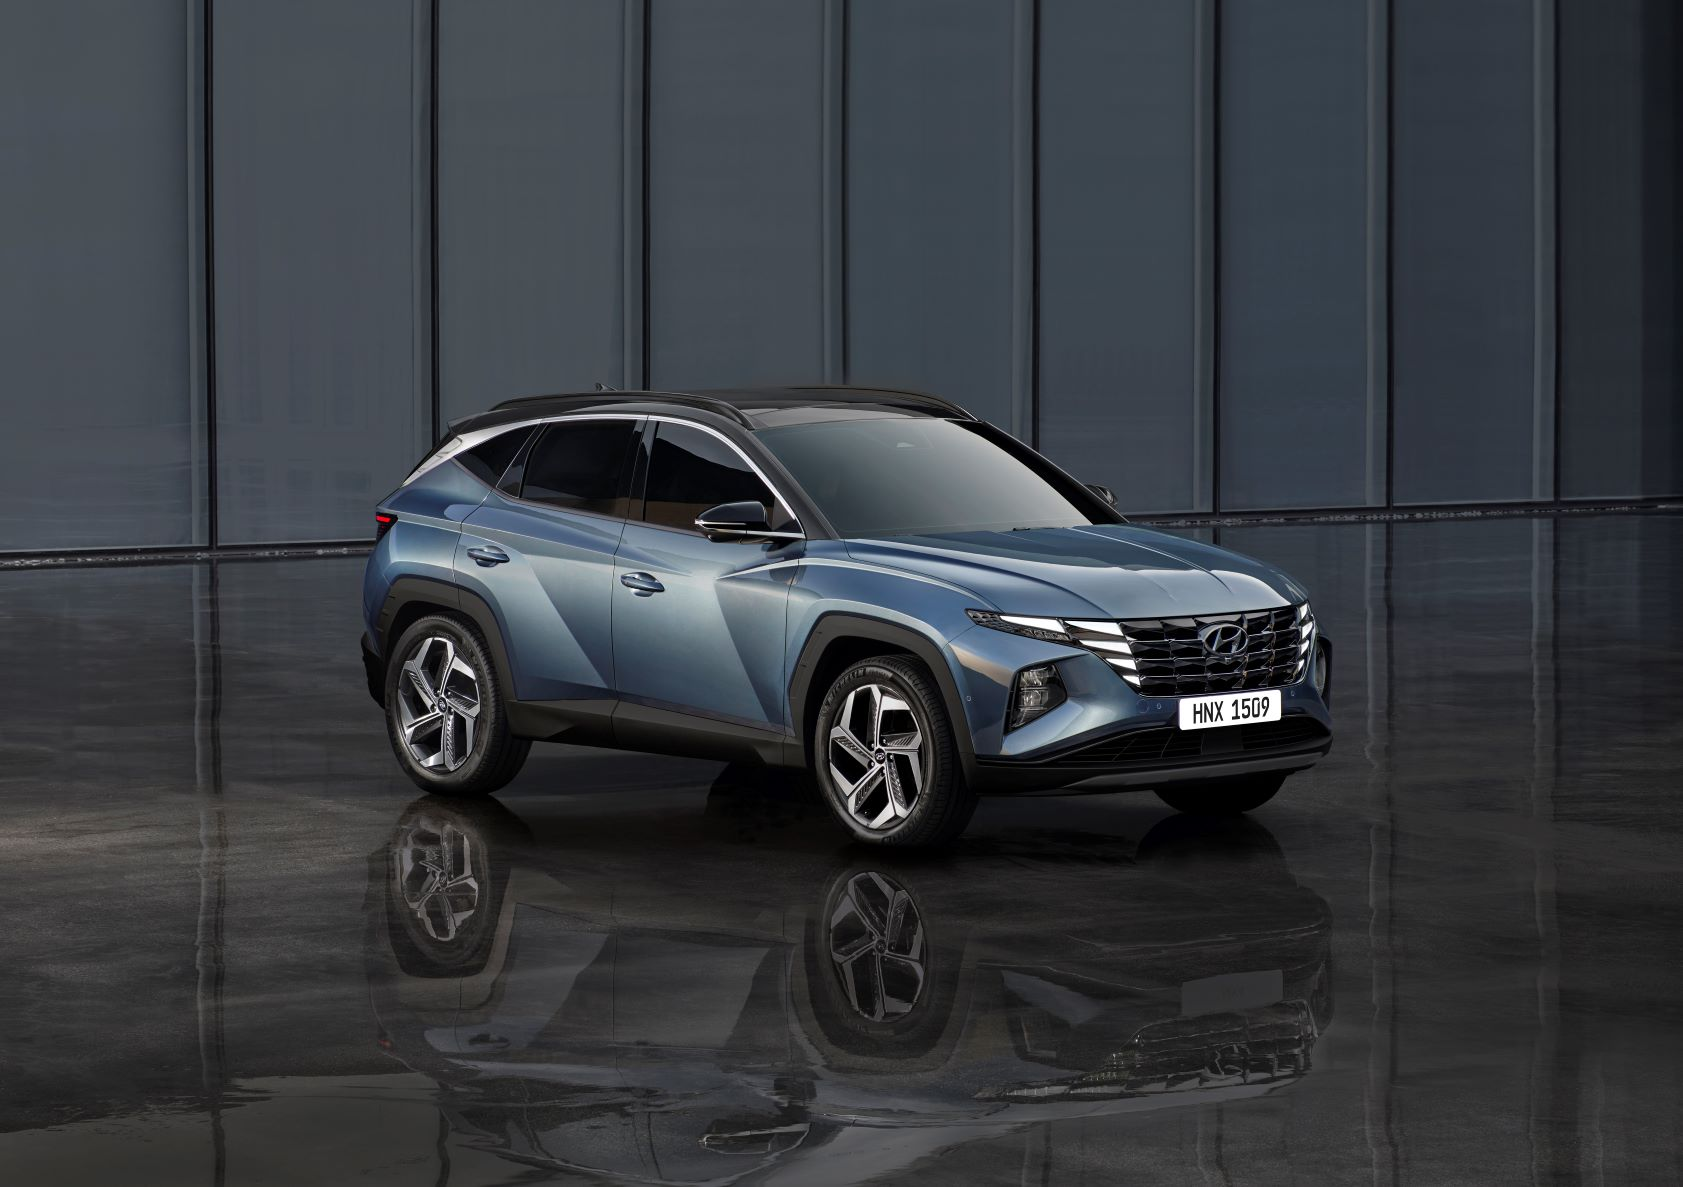 Hyundai's all-new Tucson signals a new way of driving in middle east and Africa regions